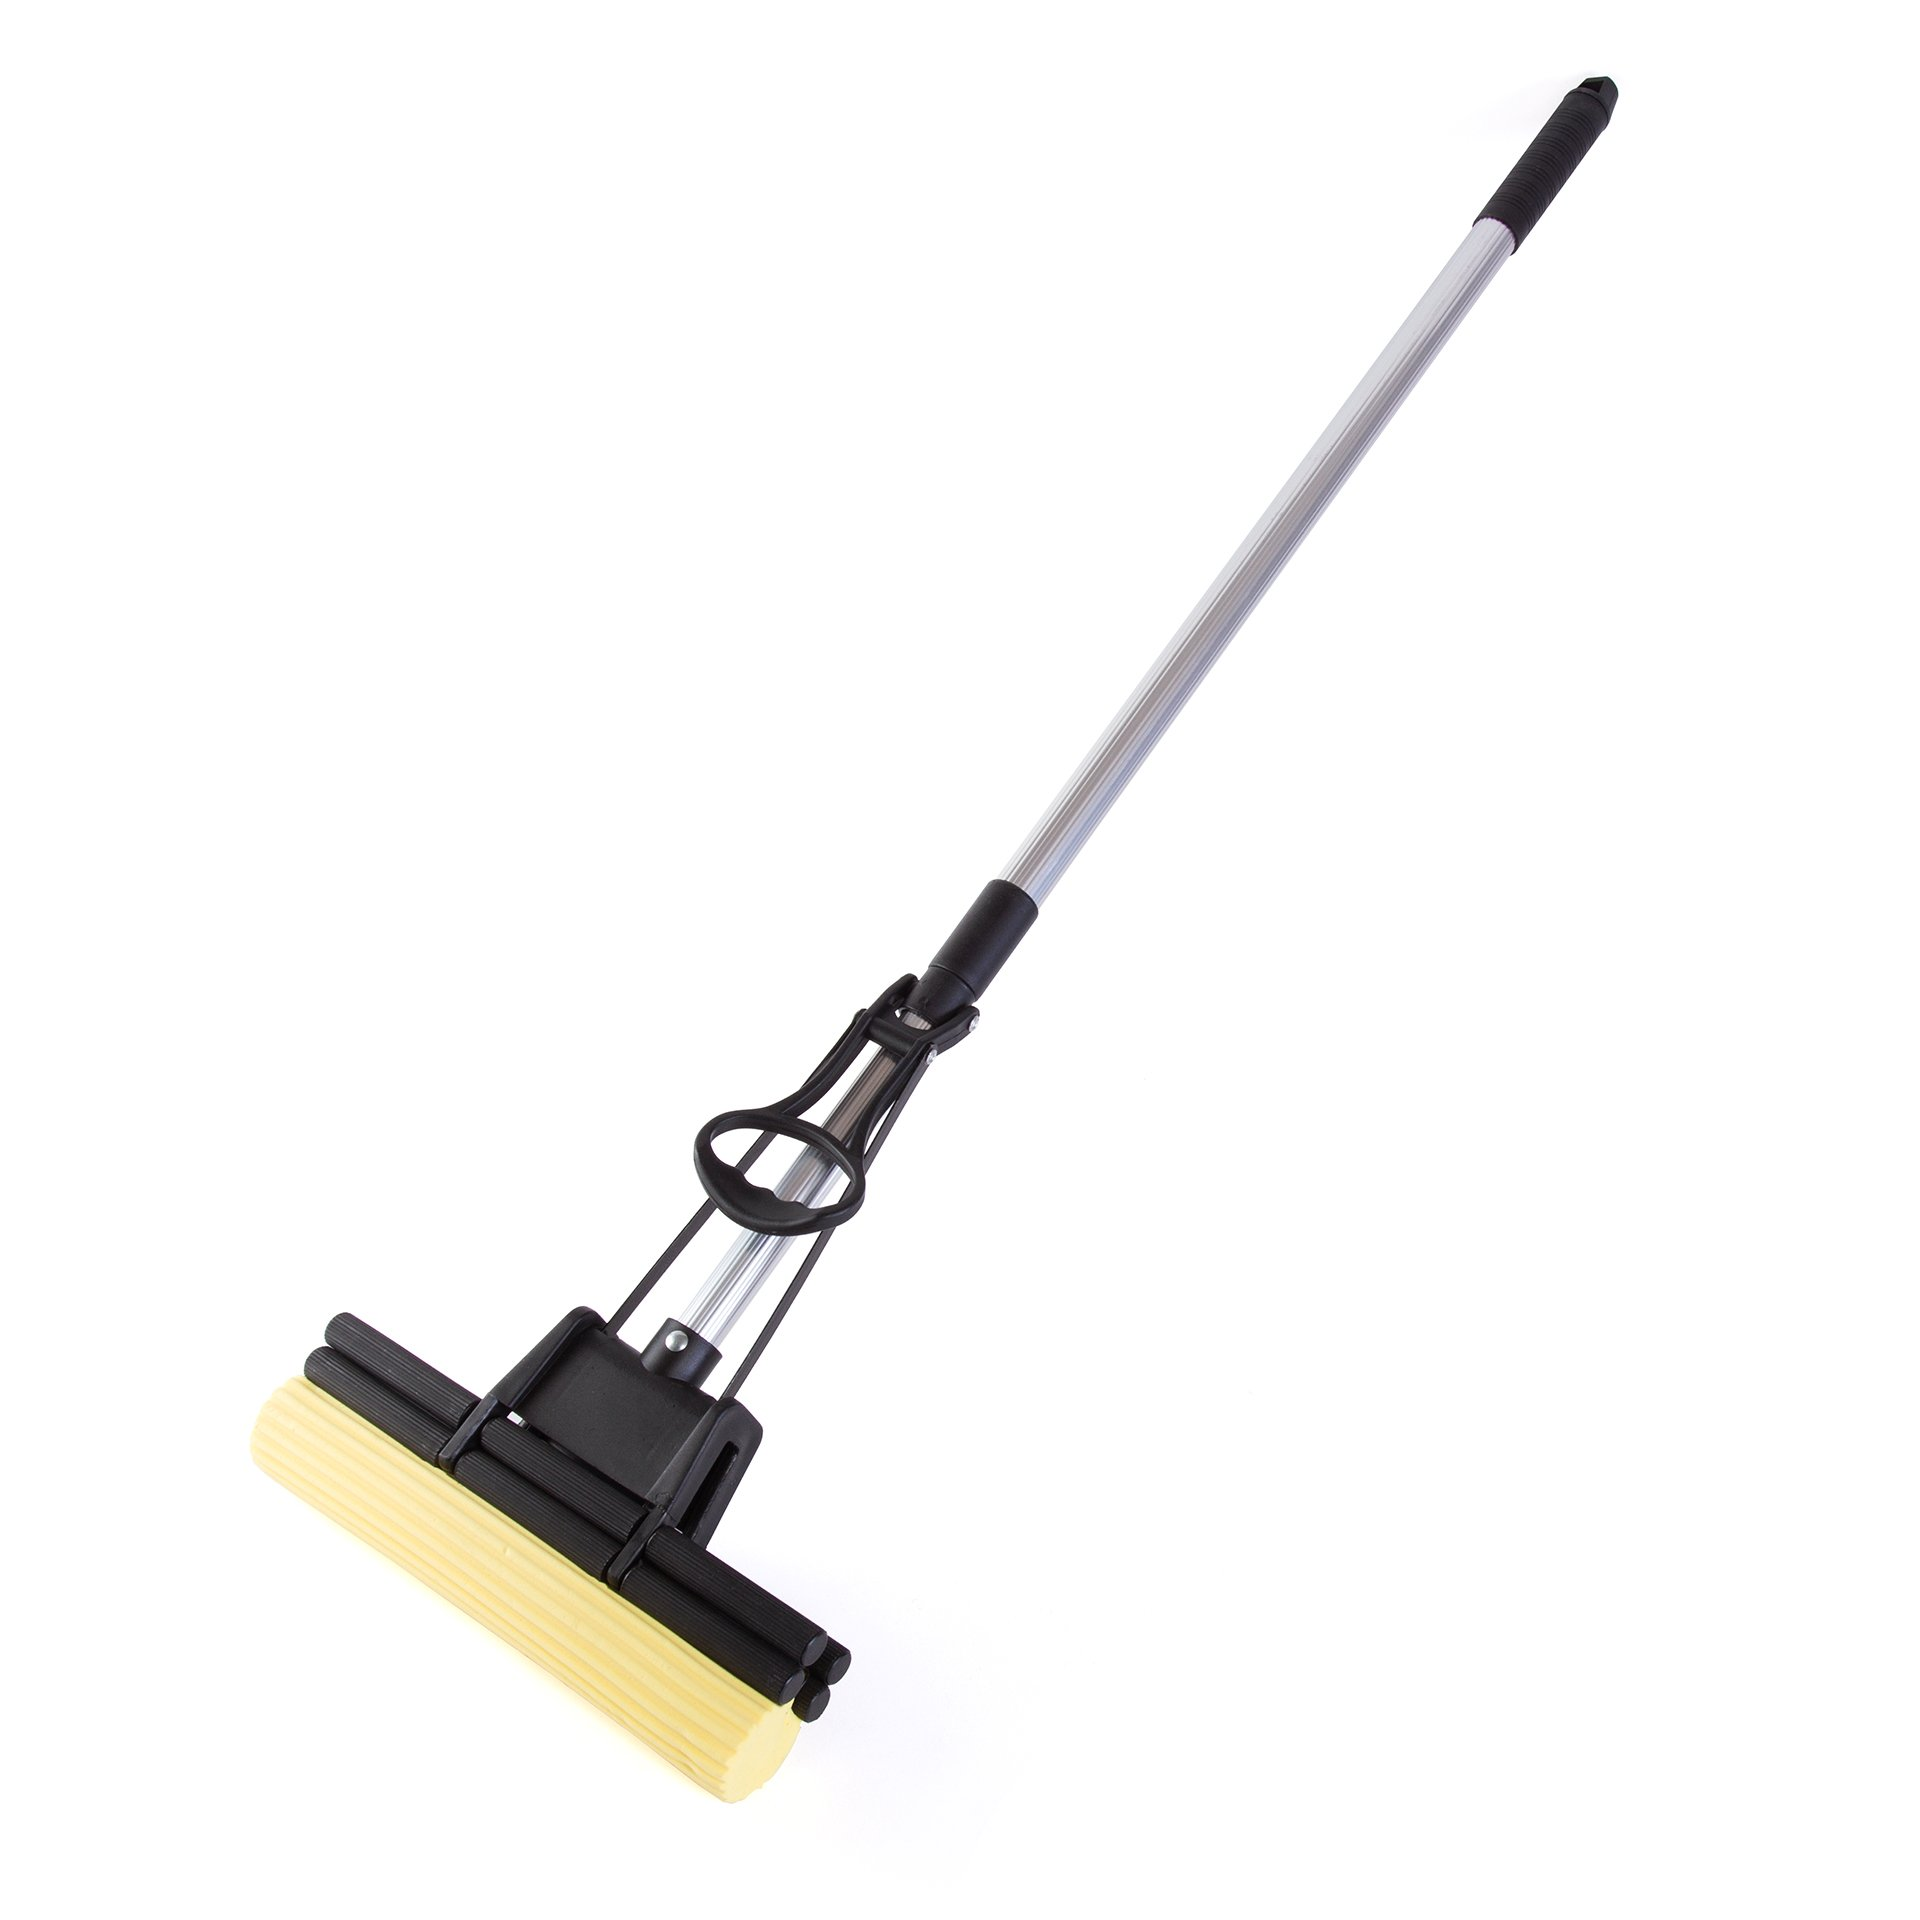 Kitchen + Home Absorbent PVA Double Roller Sponge Foam Mop with Extendable Handle